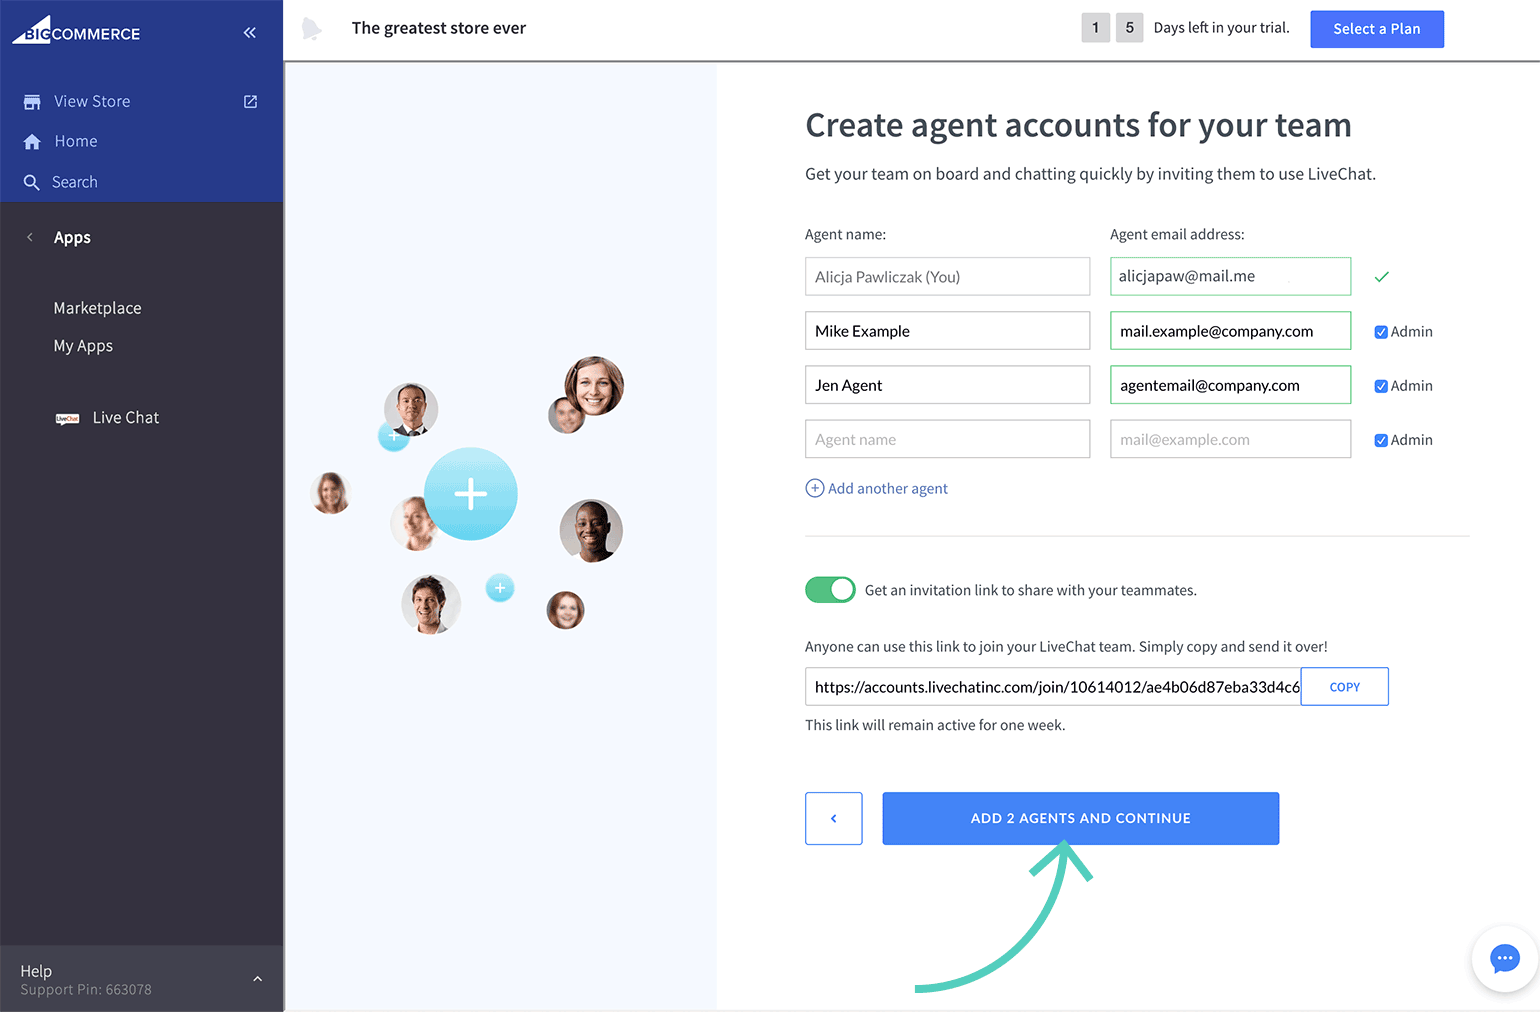 Add agents to LiveChat